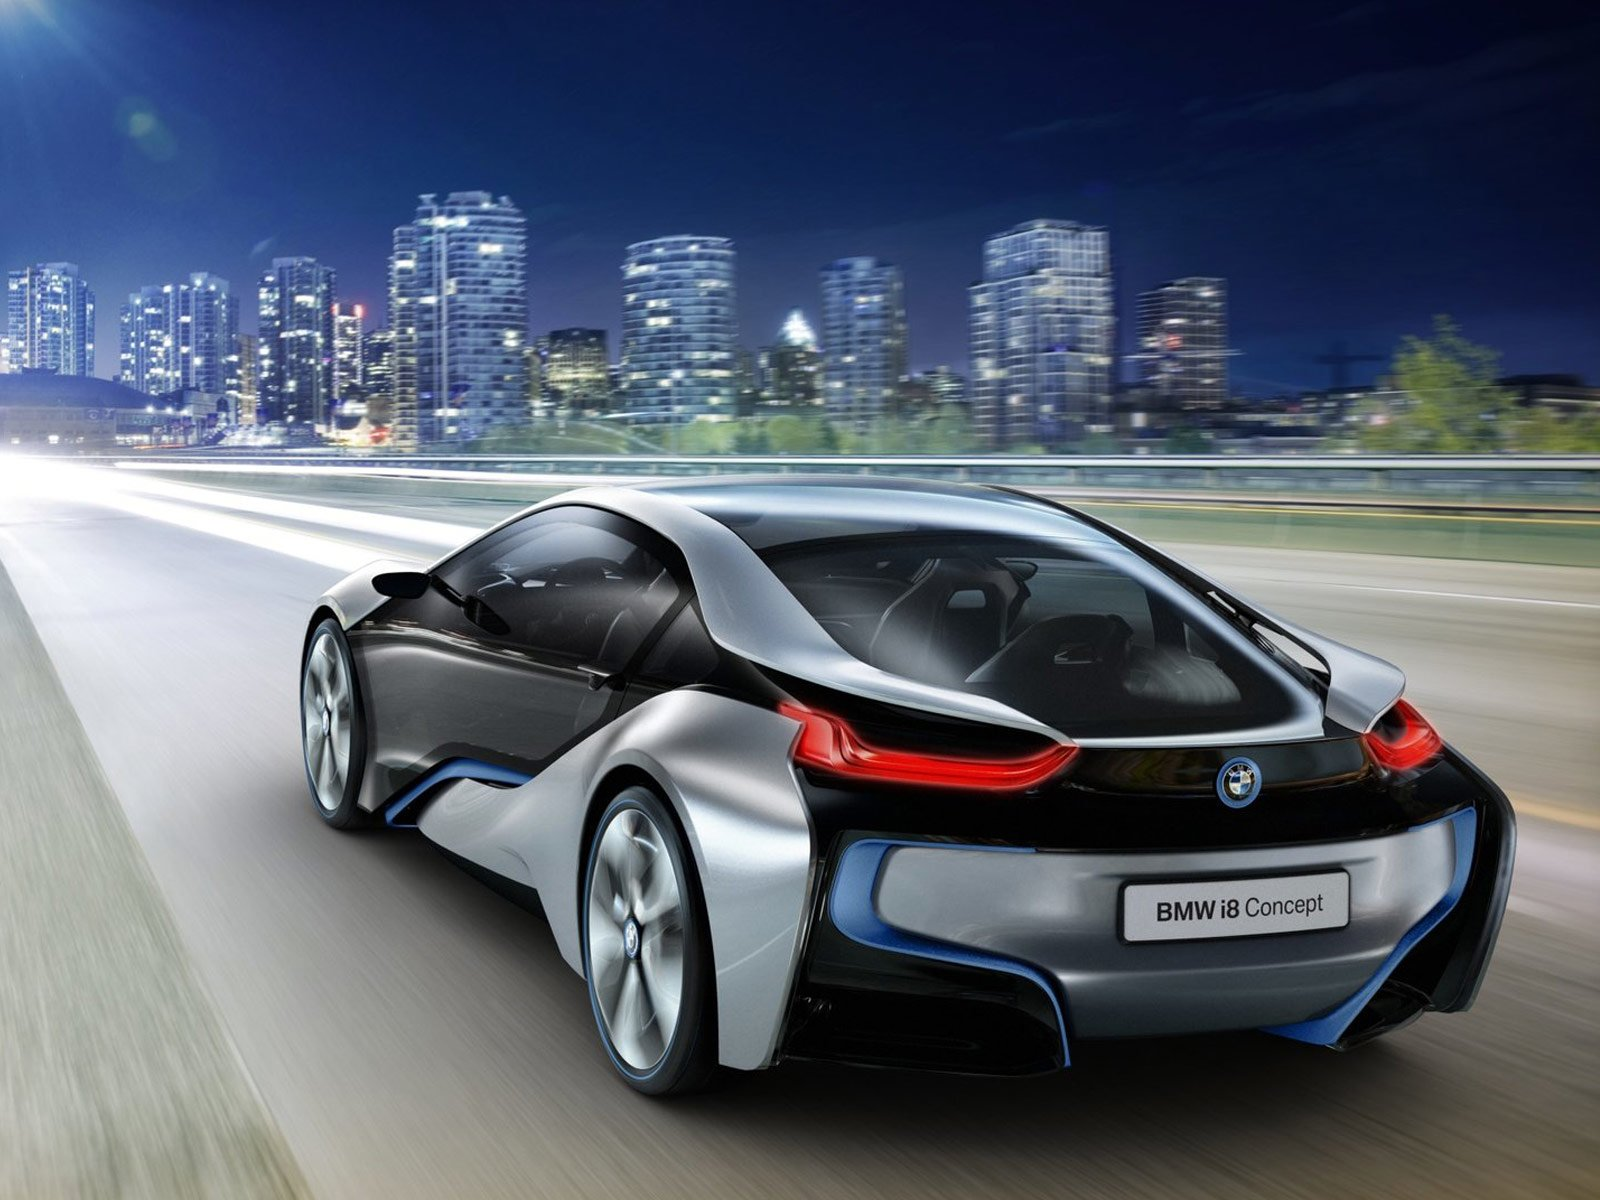 Latest 2011 Bmw I8 Concept Accident Lawyers Information Wallpaper Free Download